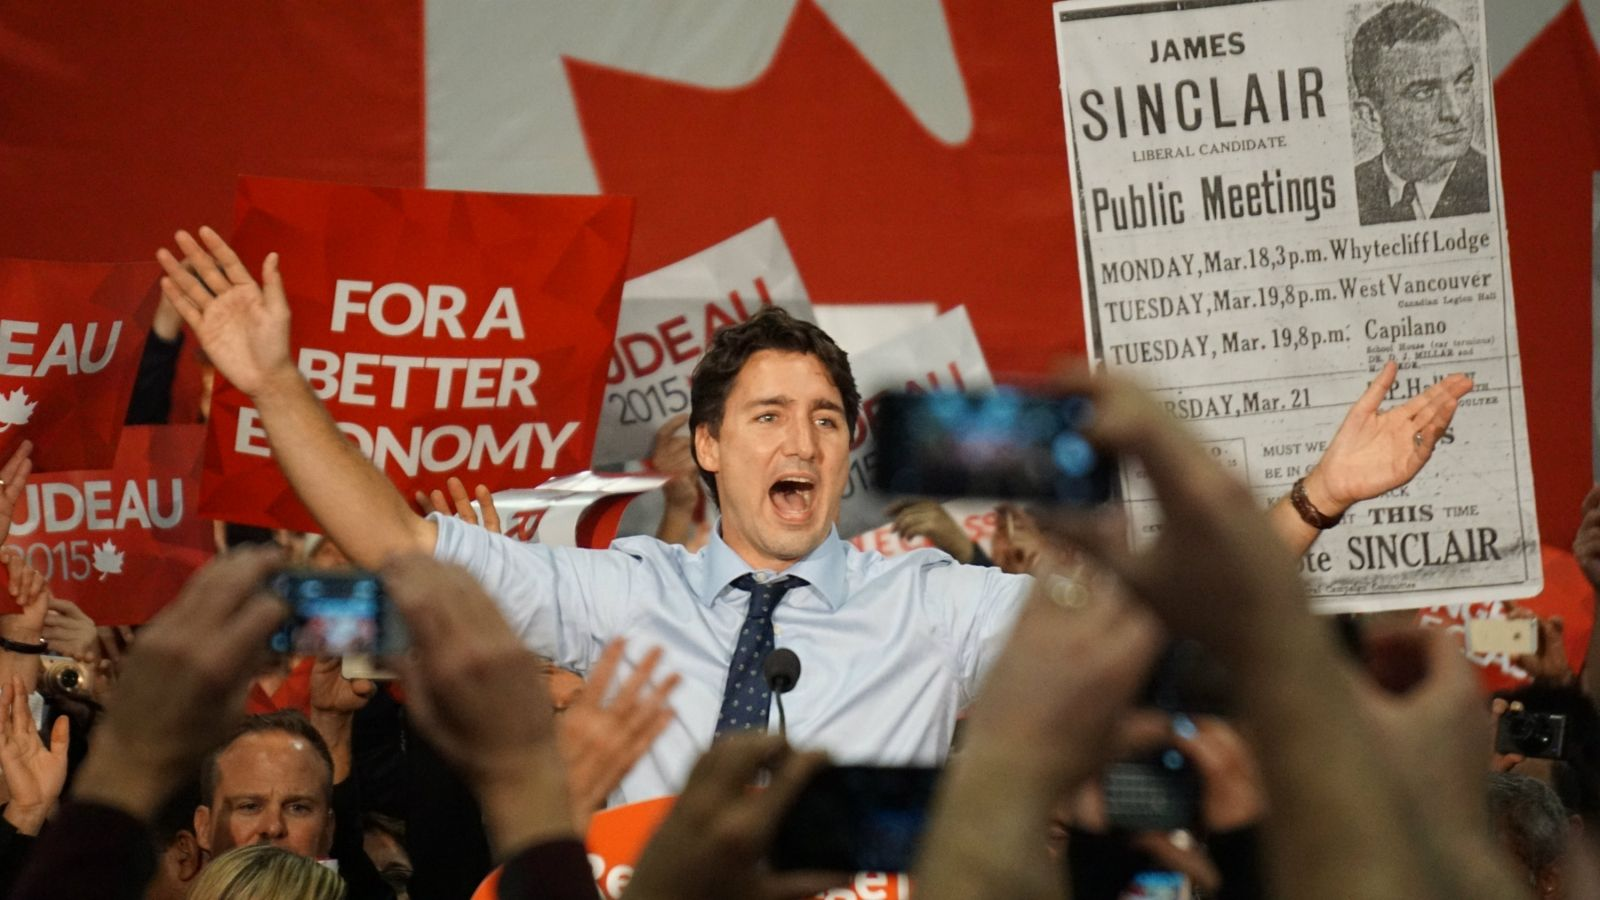 1. He Wants Change, And So Do Canadians